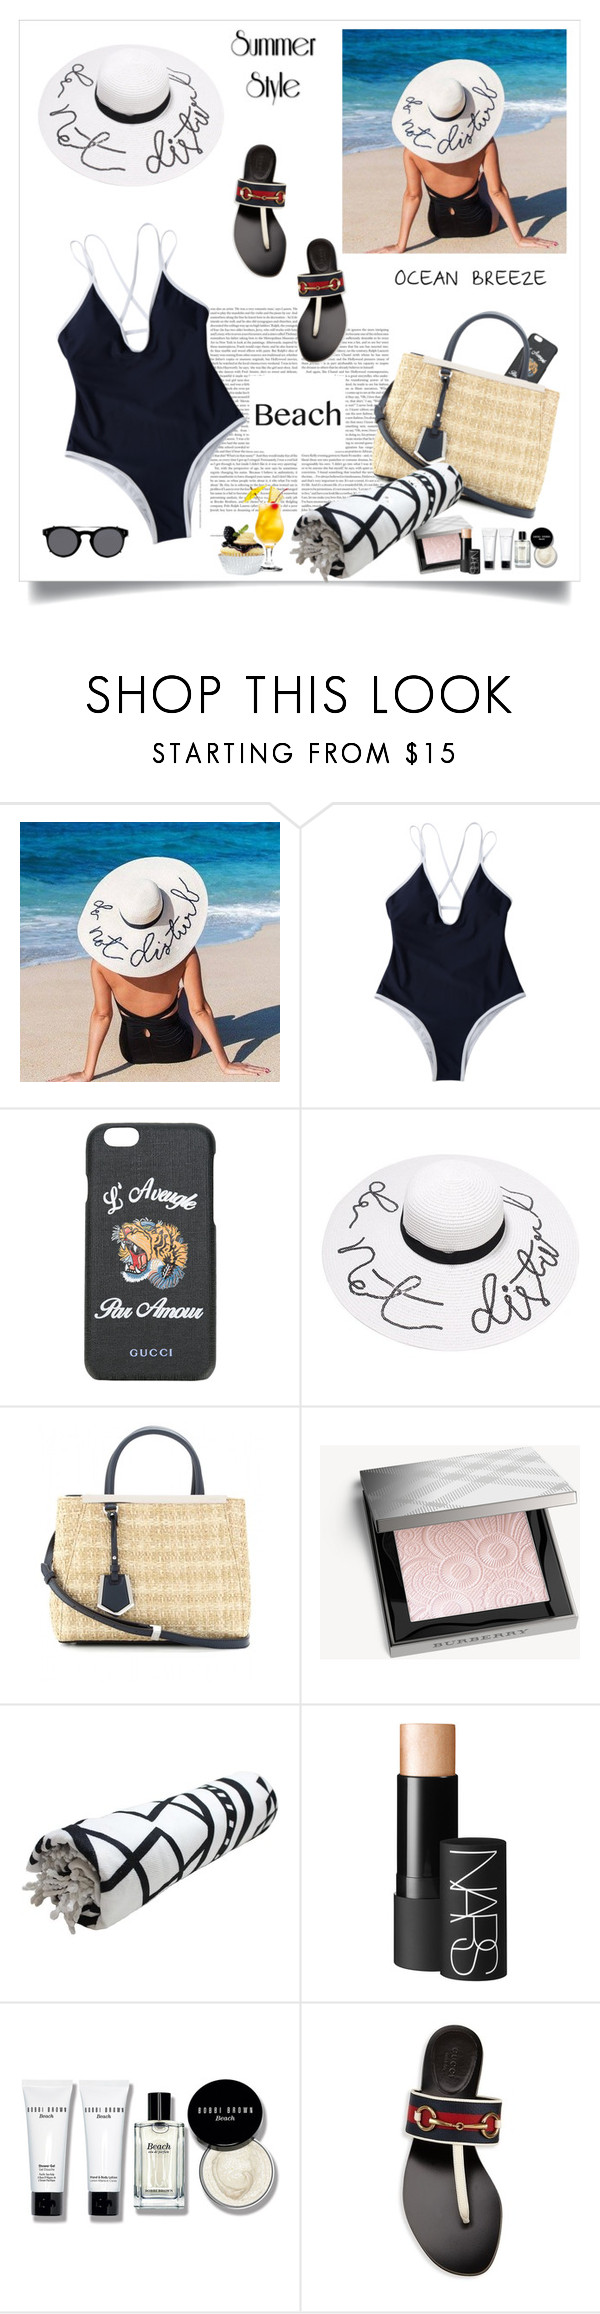 """Sun's Out: Beach Day♥♥♥#"" by marthalux ❤ liked on Polyvore featuring Gucci, Burberry, NARS Cosmetics, Bobbi Brown Cosmetics, Valentino, sun, beach and summertime"